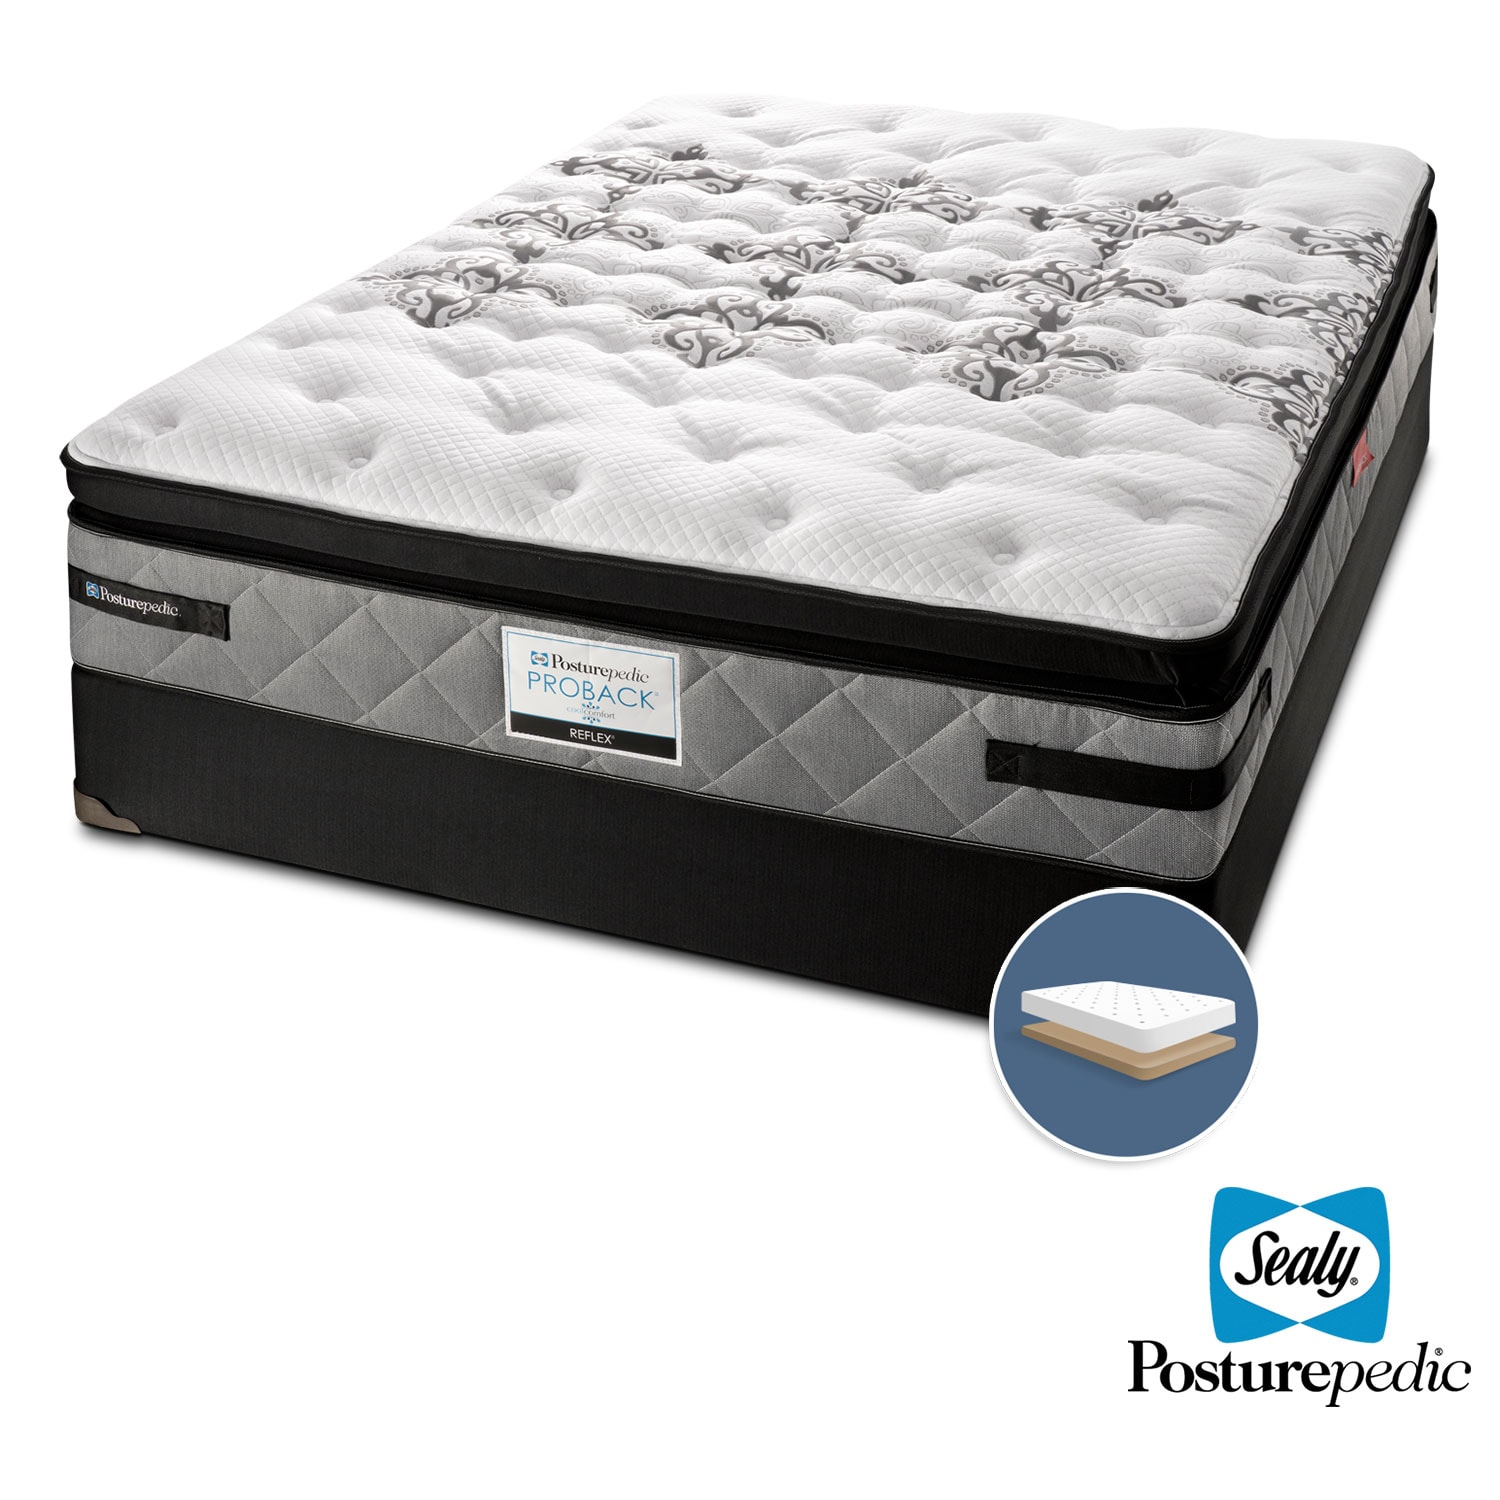 Mattresses and Bedding - Sealy Myth Plush Queen Mattress and Low-Profile Boxspring Set